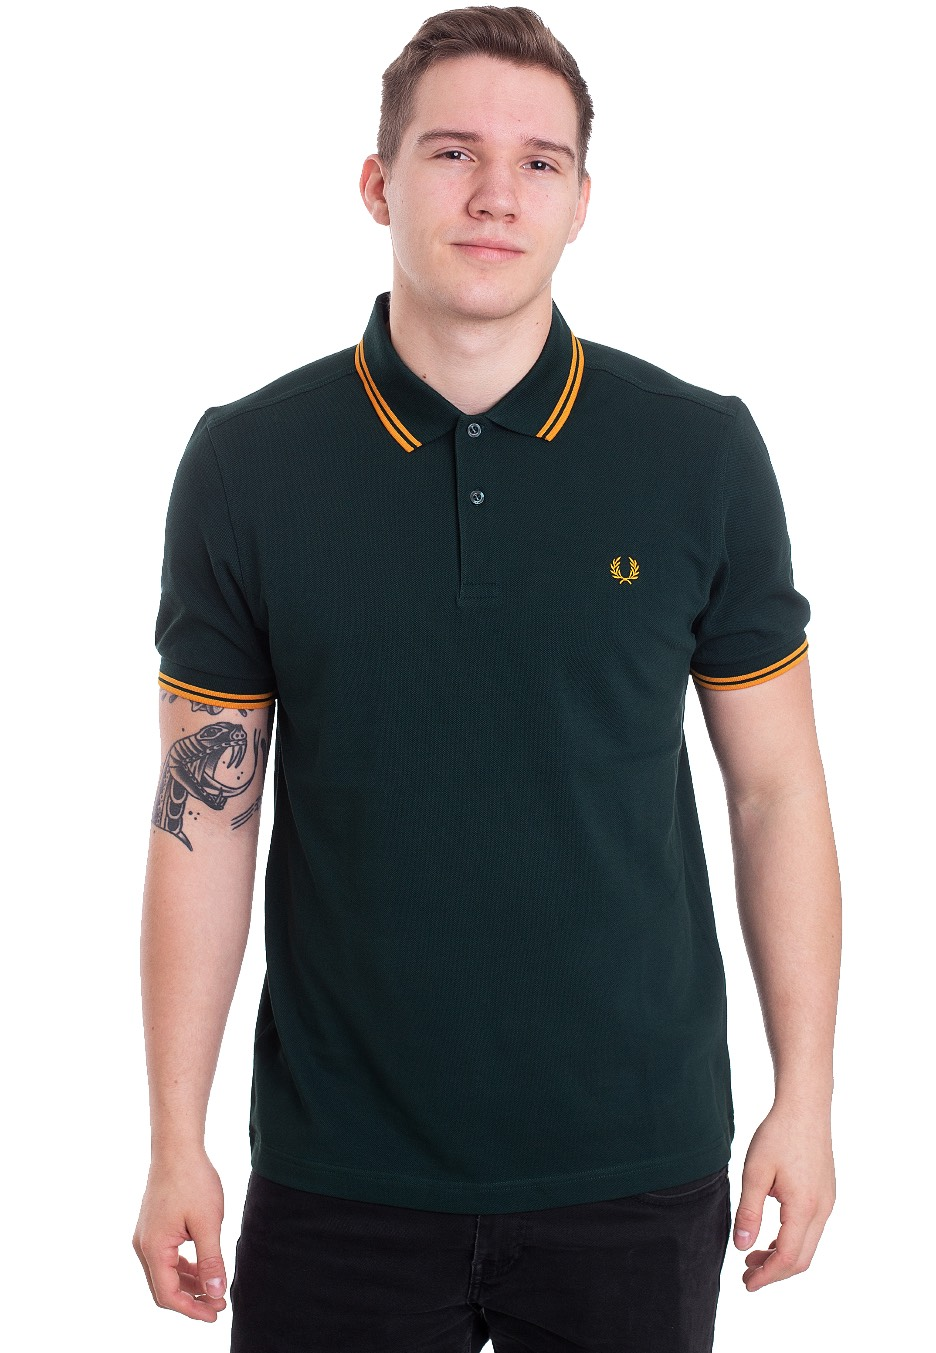 aed95f1ddea Fred Perry - Twin Tipped Evergreen - Polo - Streetwear Shop - Impericon.com  Worldwide